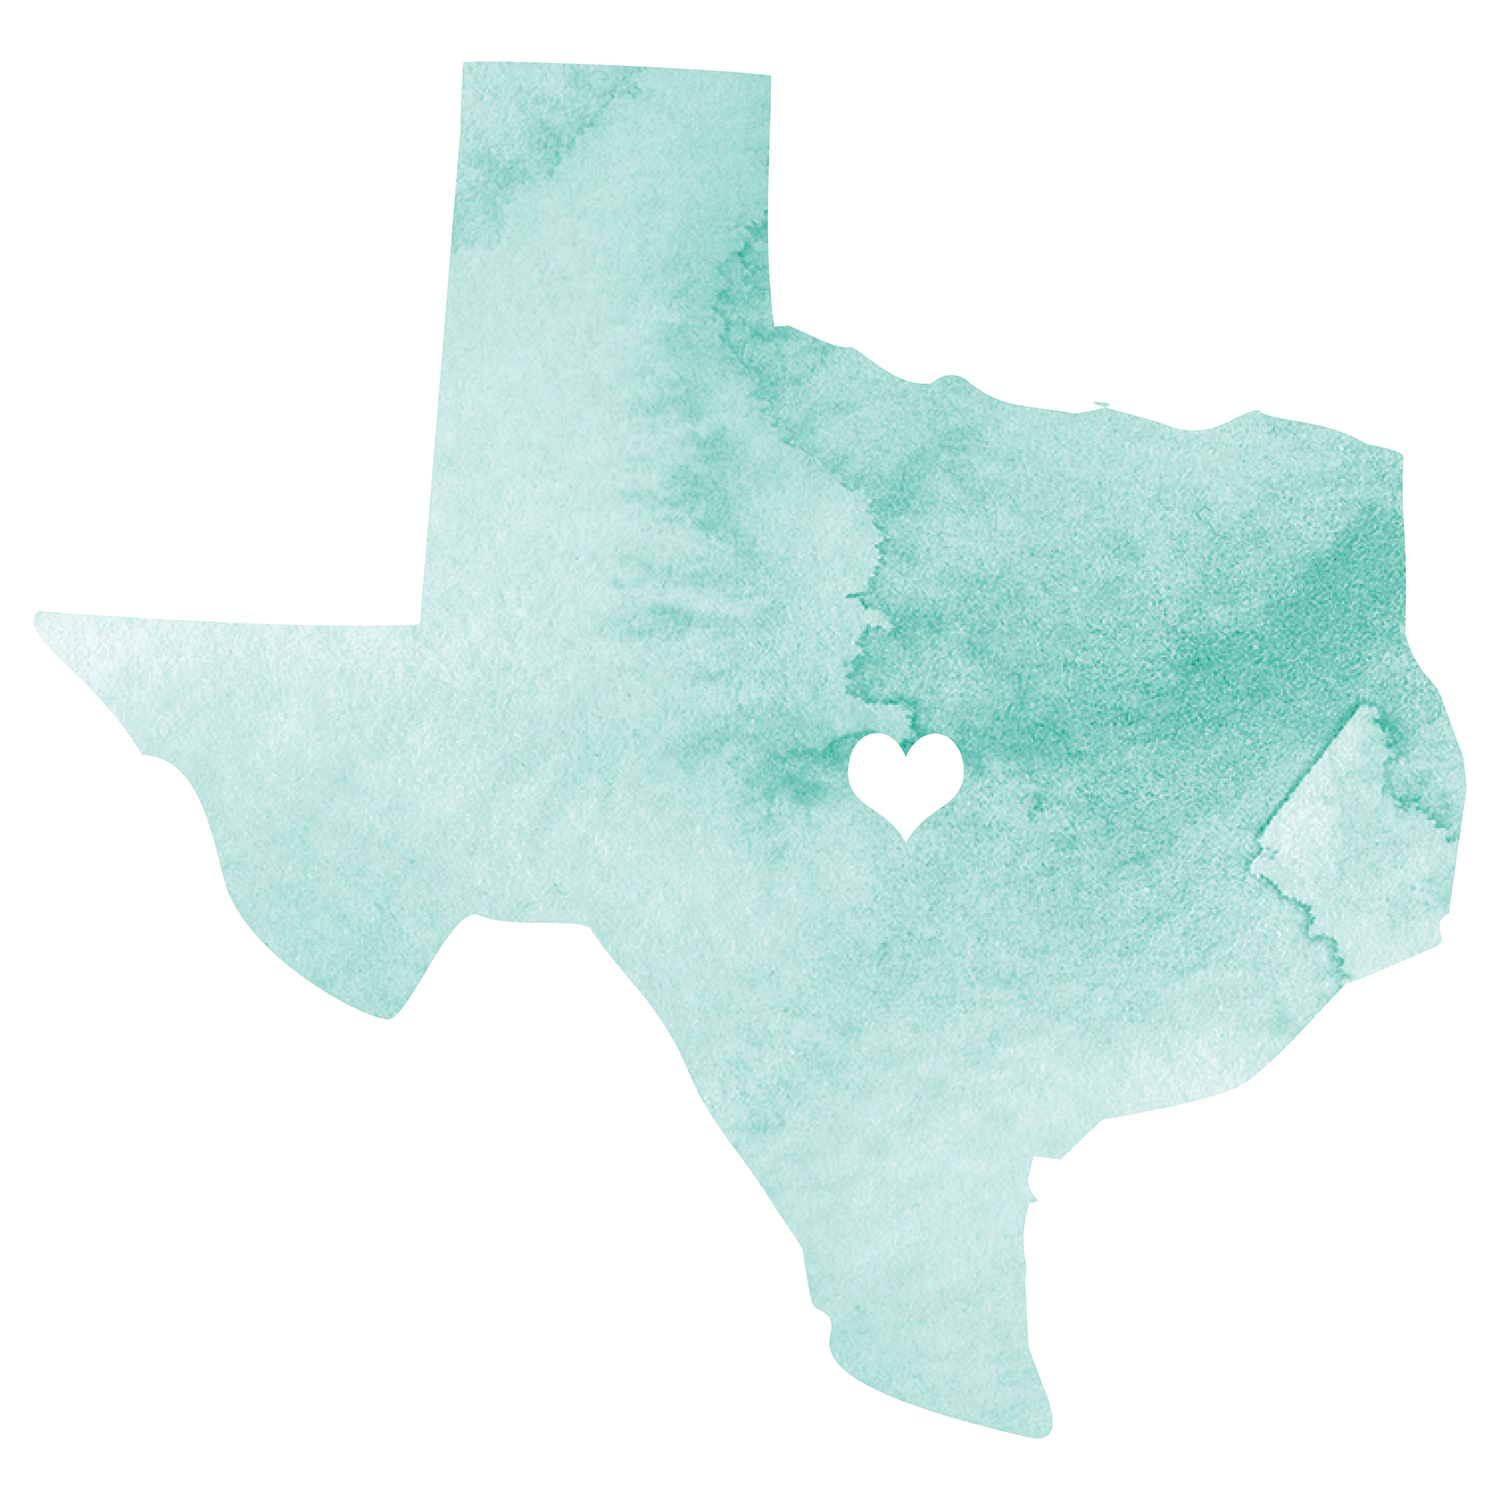 watercolor texas graphic with heart over austin